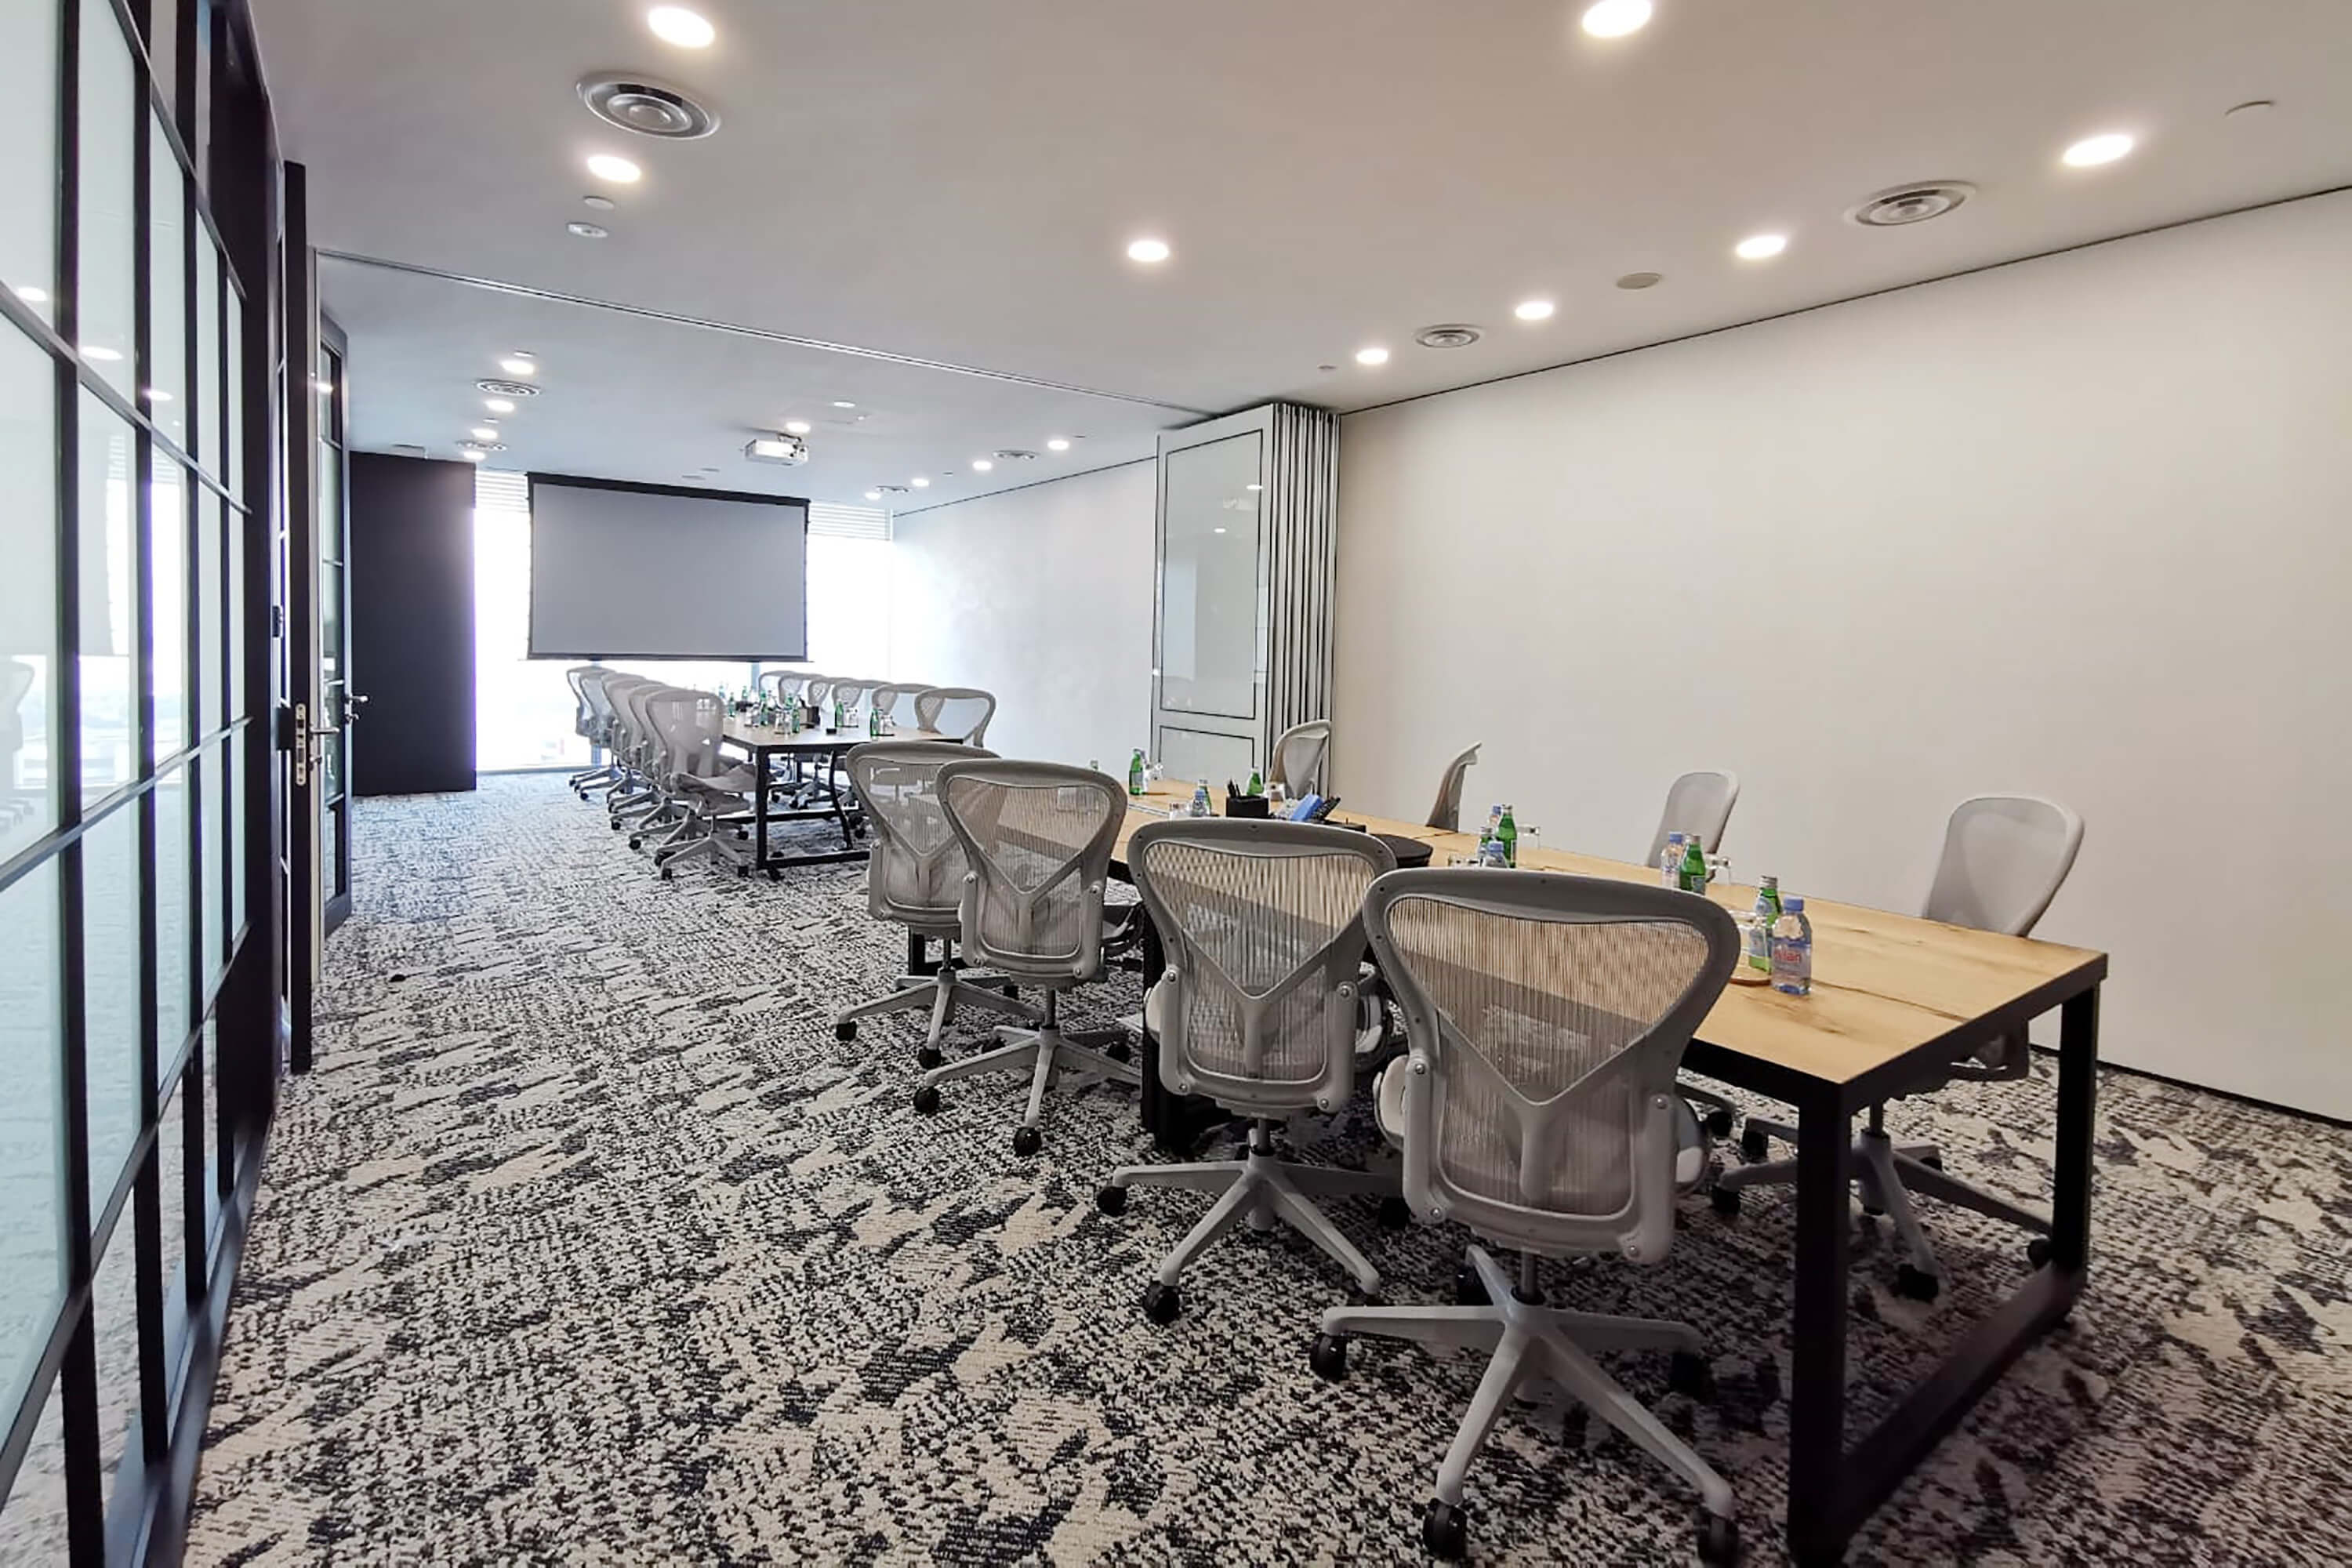 The Executive Centre in Singapore